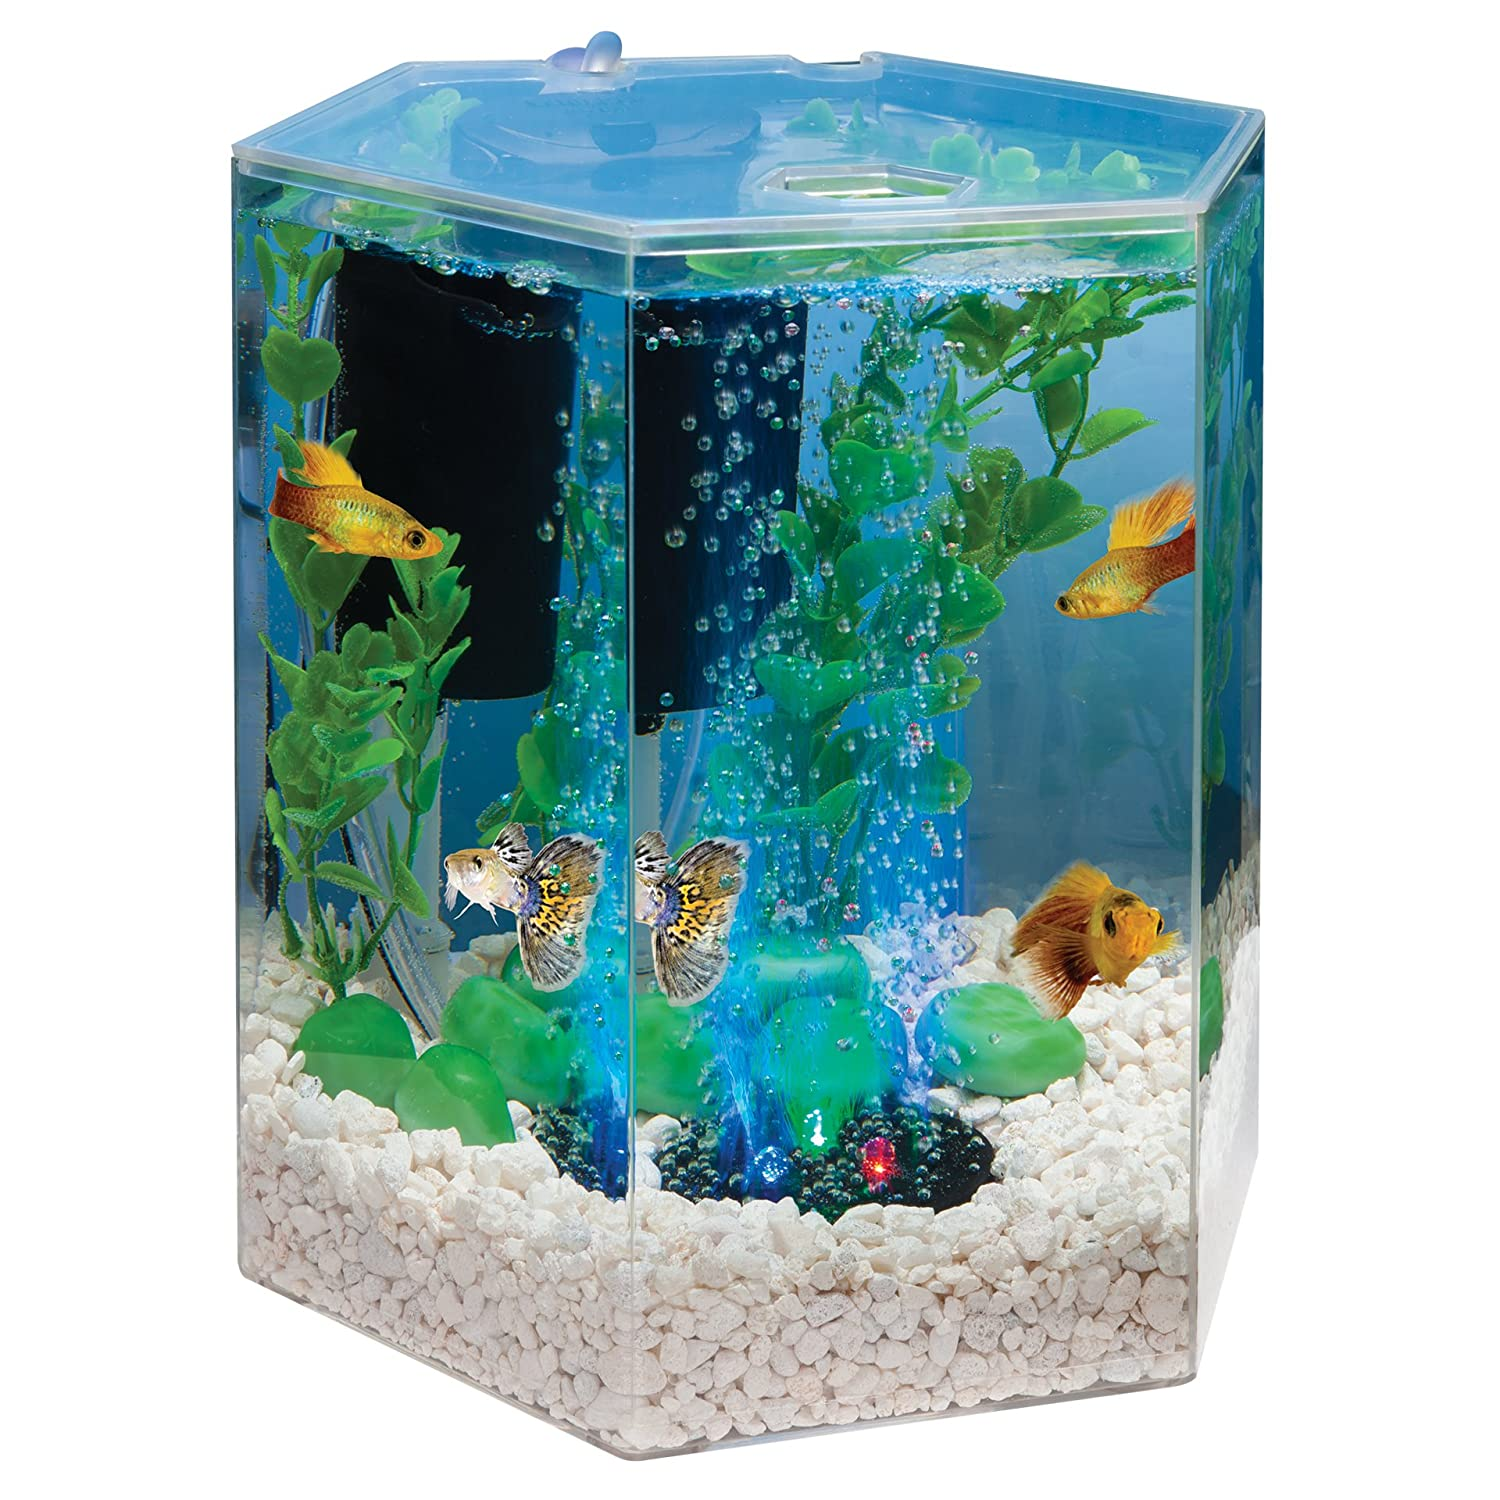 small screenshot 1 office fish. amazoncom tetra 29040 hexagon aquarium kit with led bubbler 1gallon starter kits pet supplies small screenshot 1 office fish i